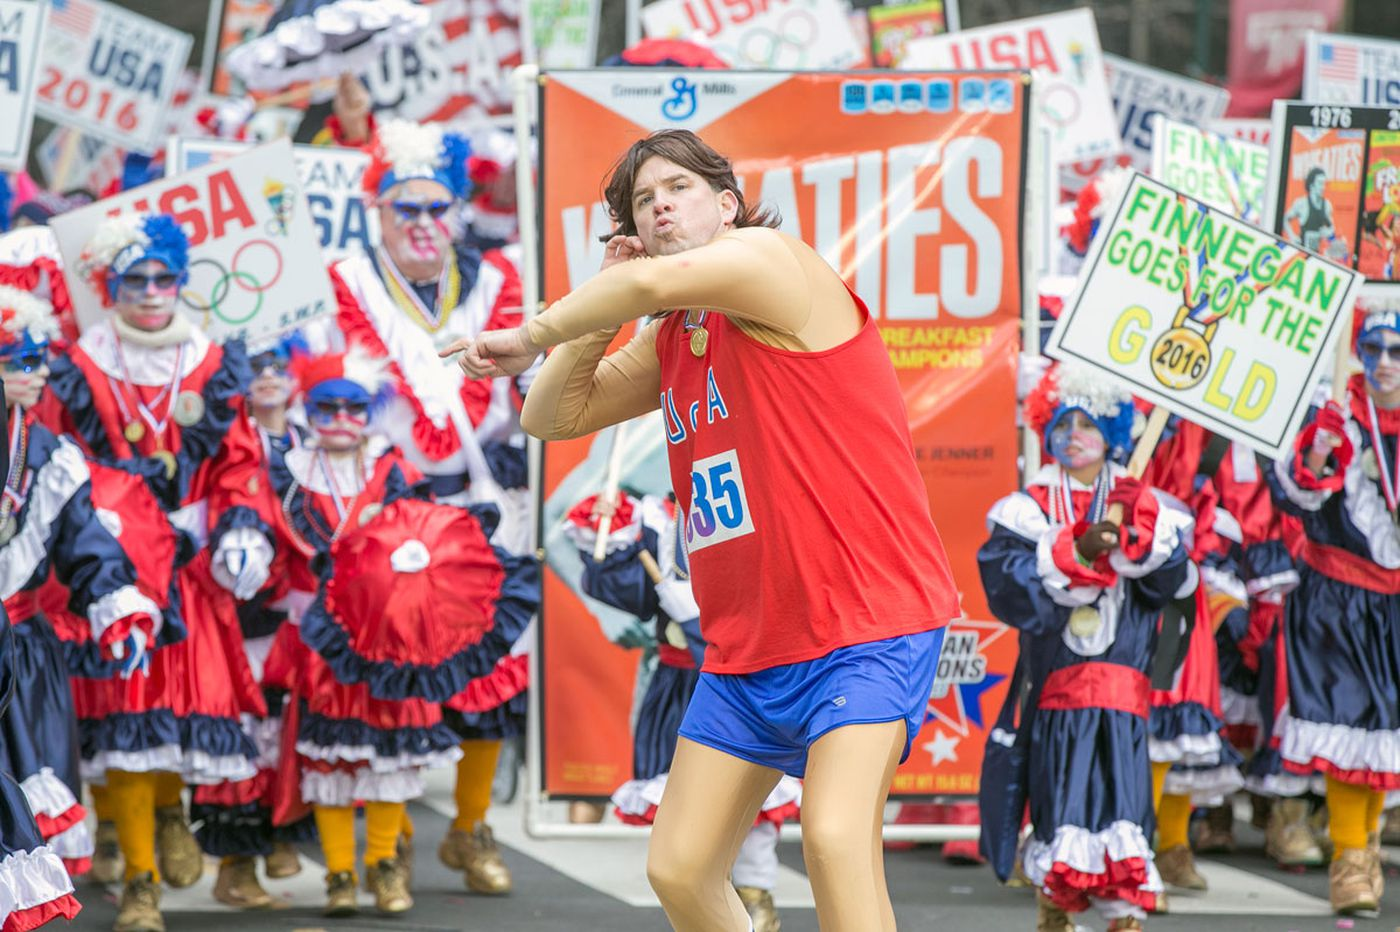 Mummers after sensitivity training: I can see how Caitlyn Jenner skit was offensive